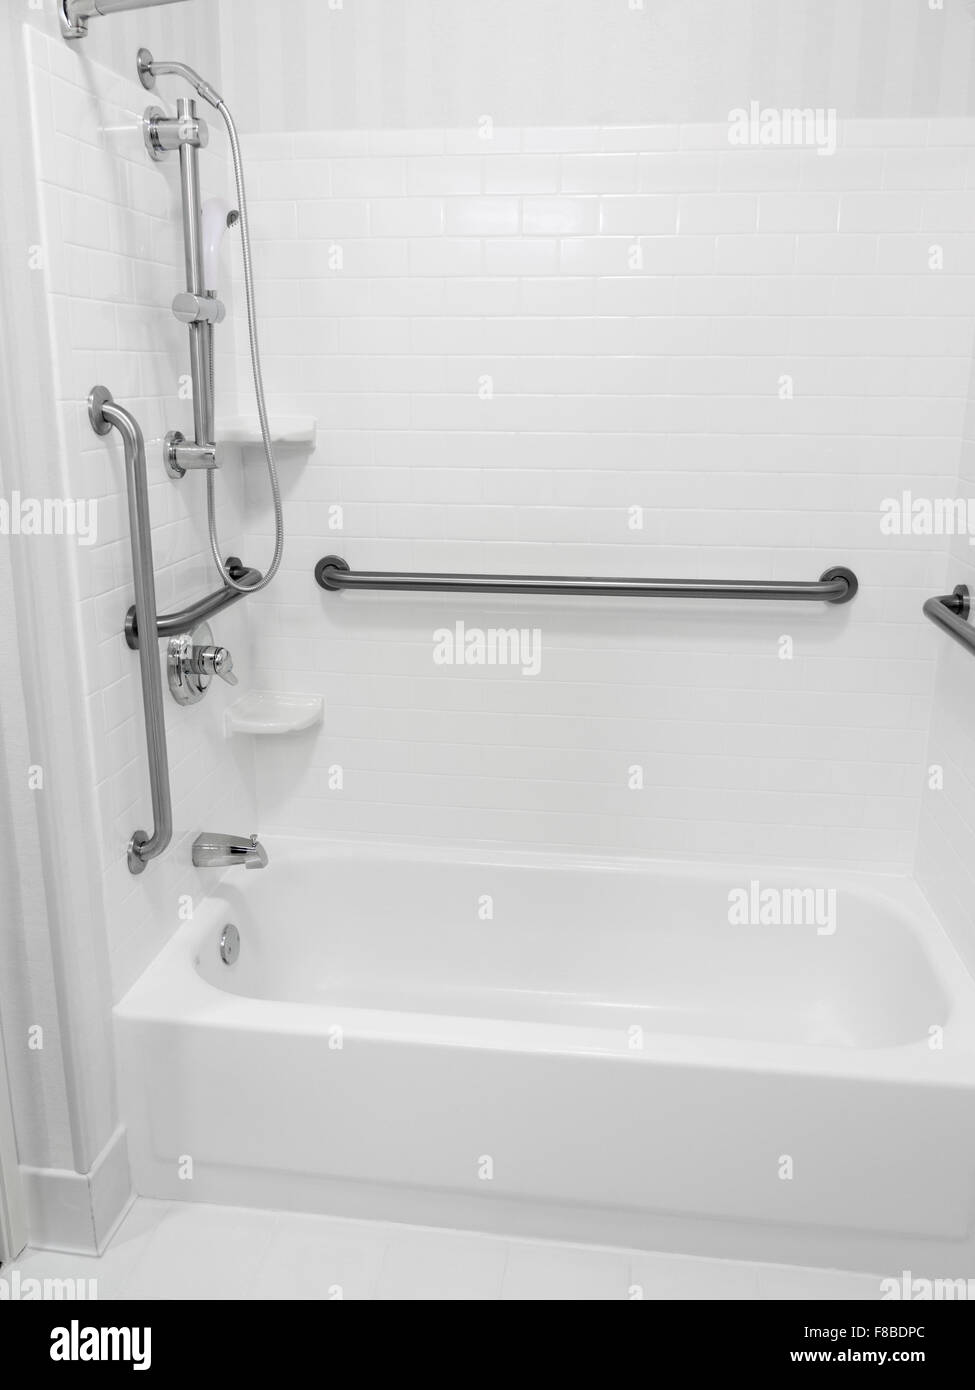 Handicapped disabled access bathroom bathtub shower with grab bars ...